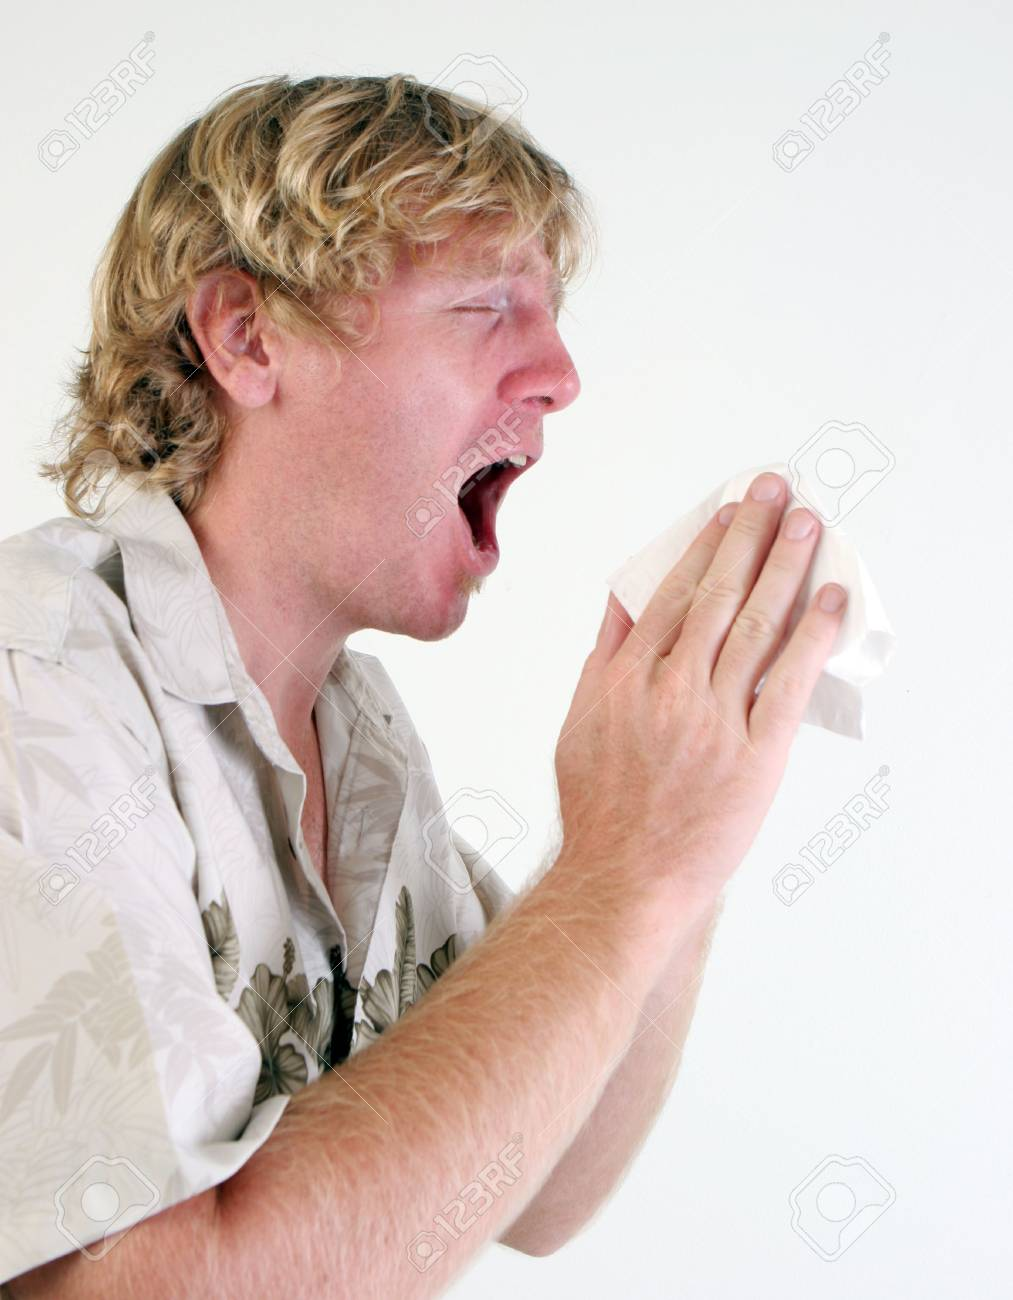 Young man with a cold or flu sneezing - isolated. Stock Photo - 5899695